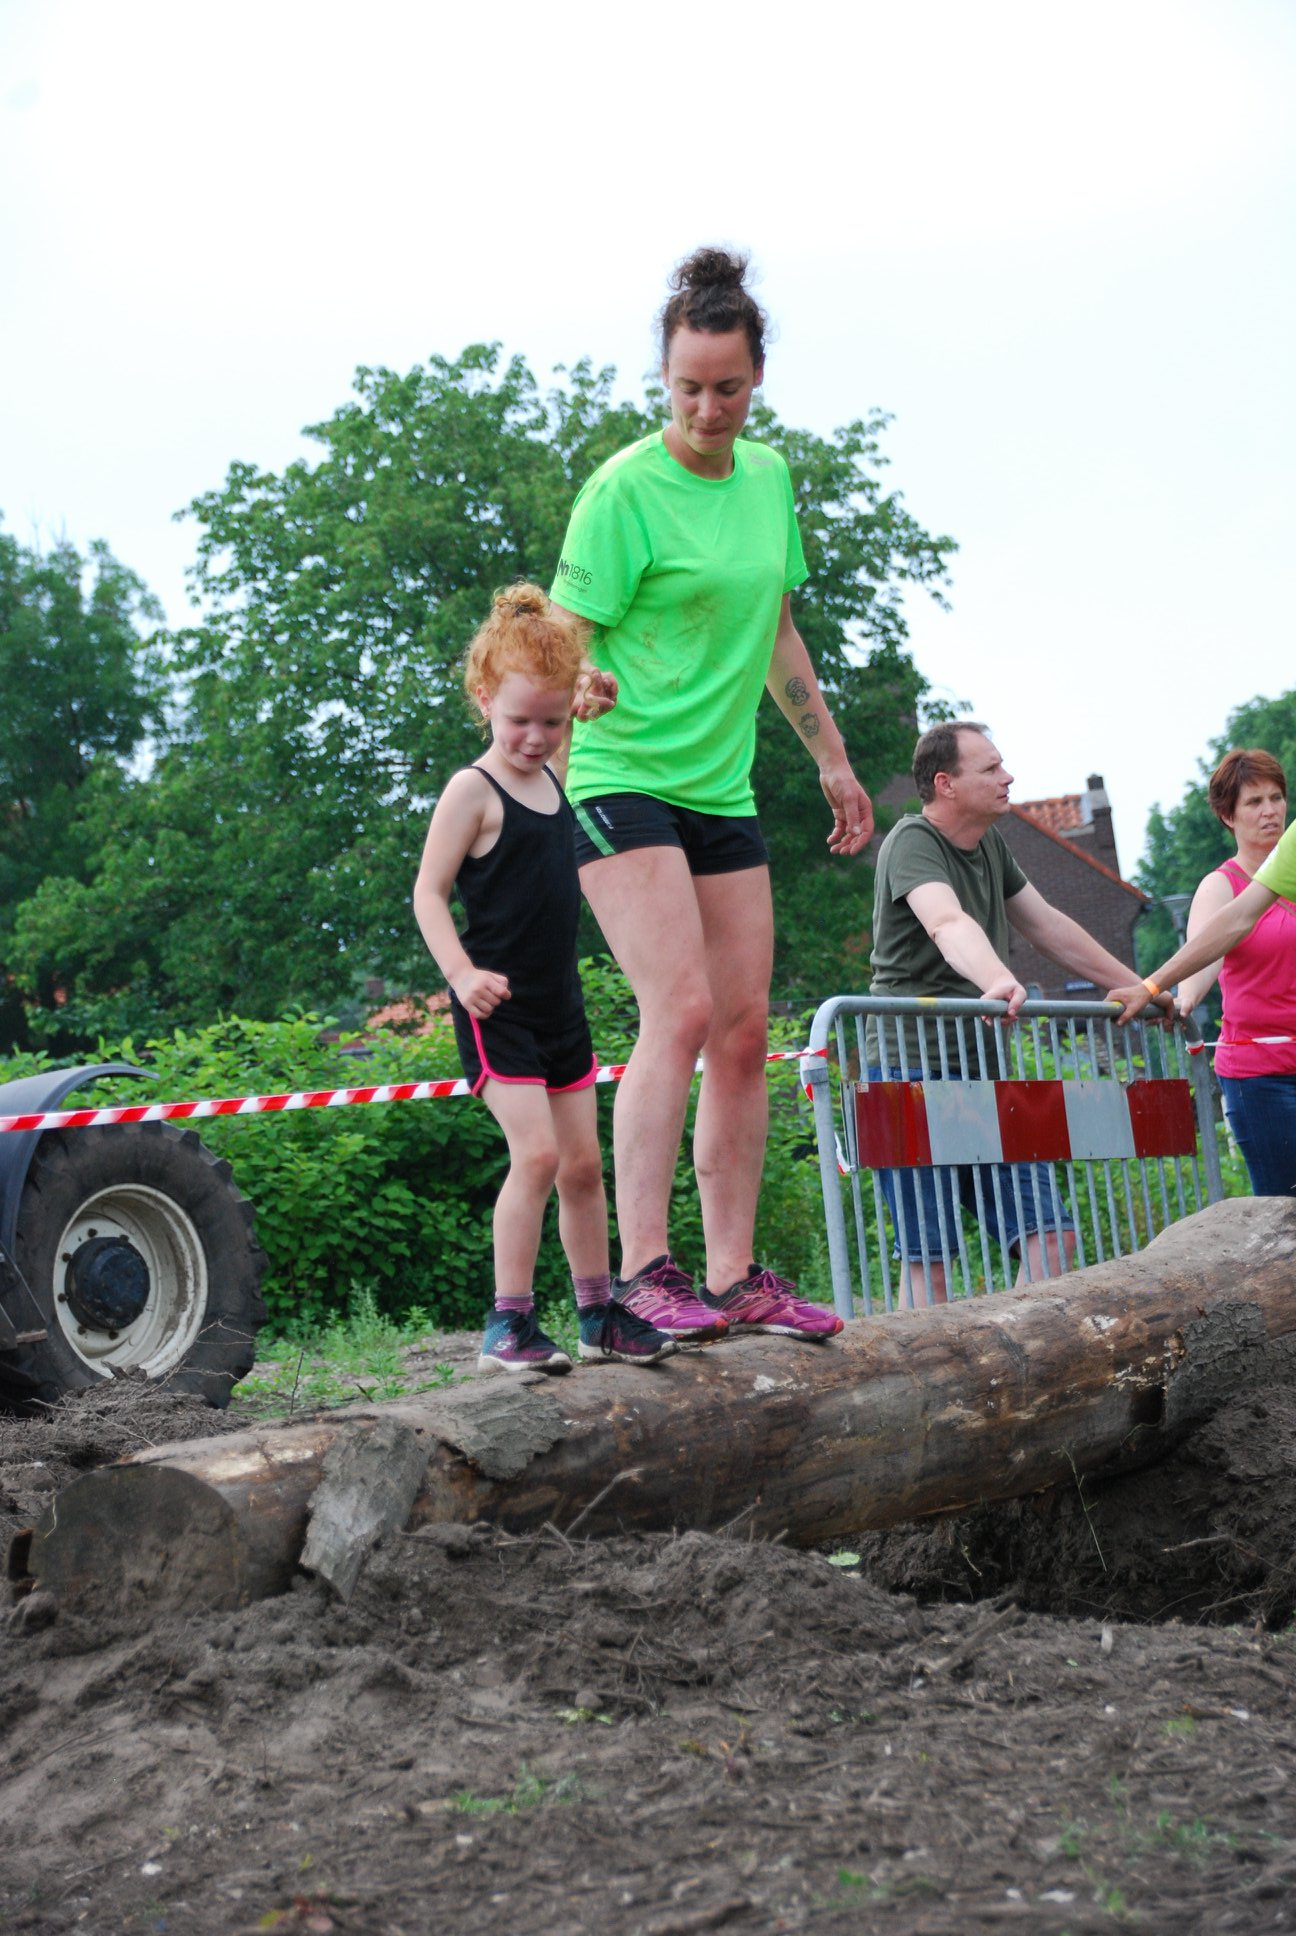 sfeerimpressie Roche Obstacle Run